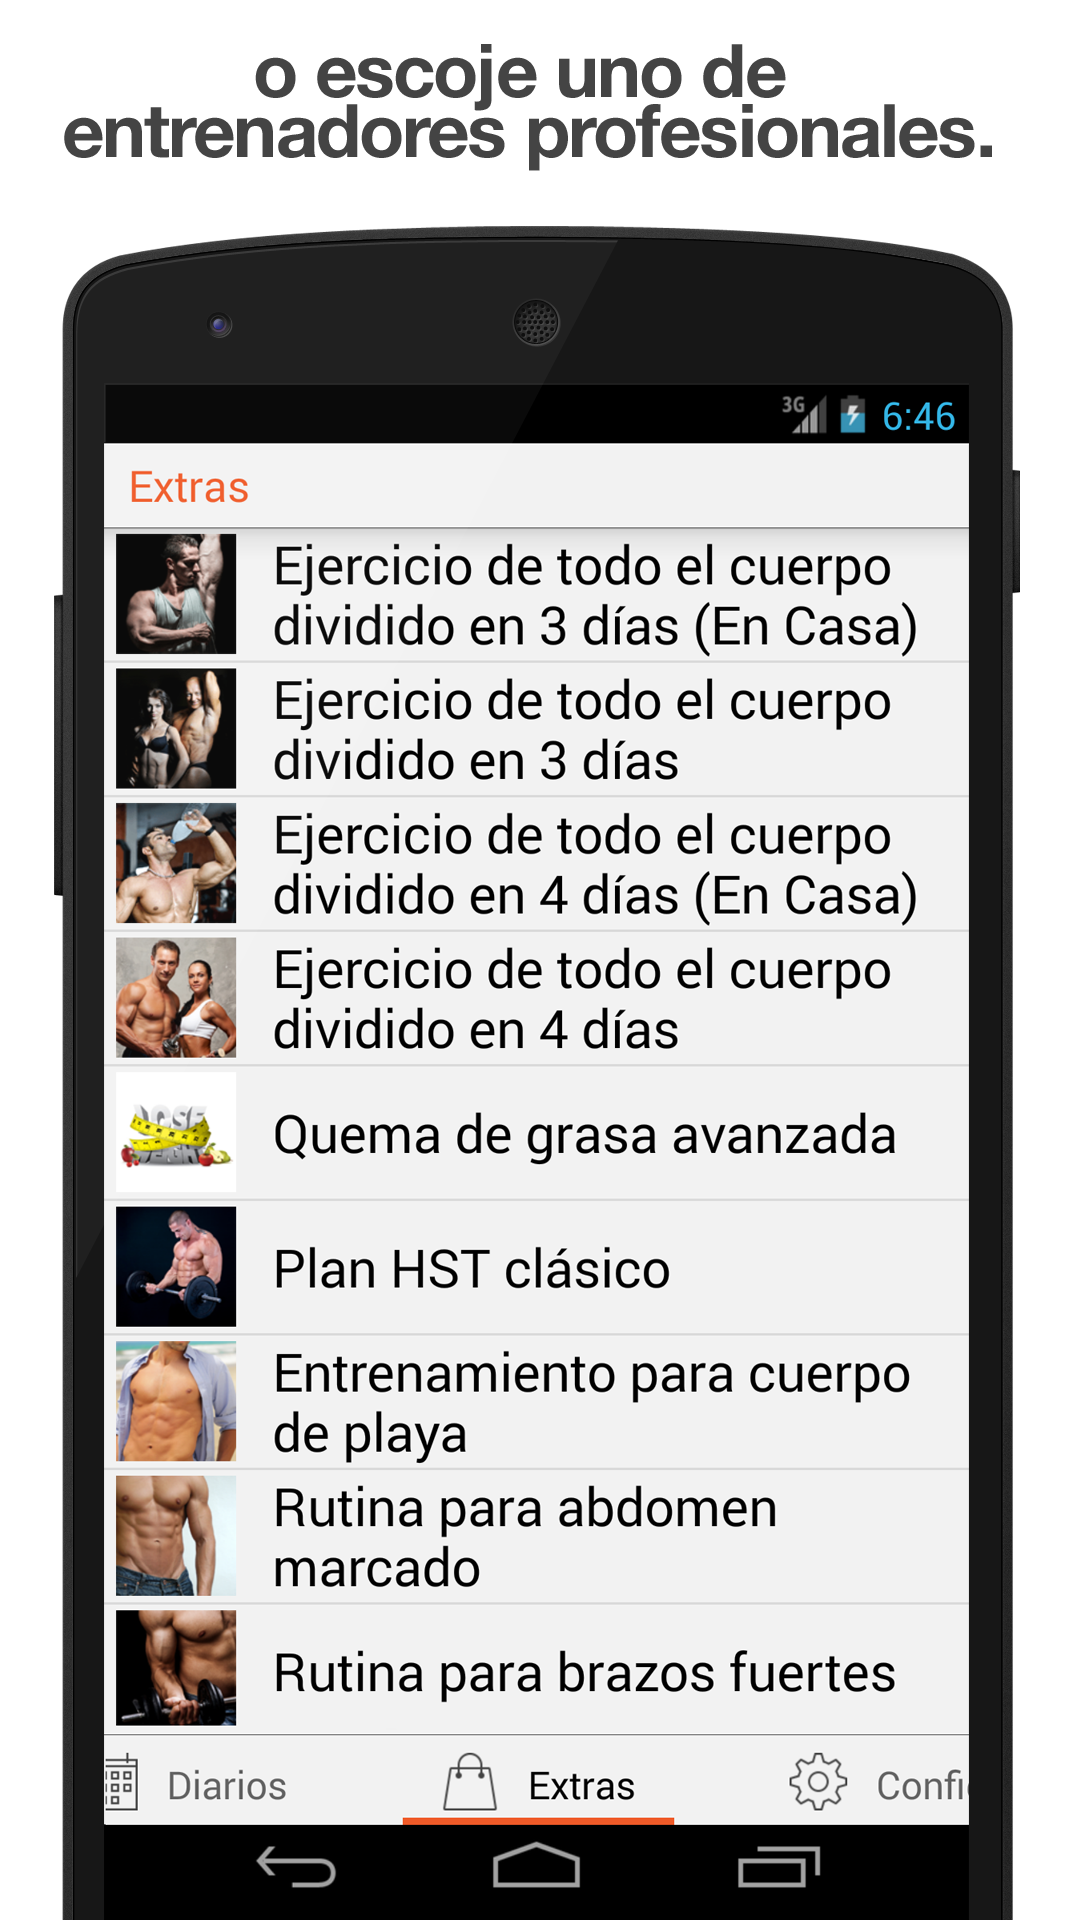 Fitness Point - Diario de ejercicio y acondicionamiento: Amazon.es: Appstore para Android